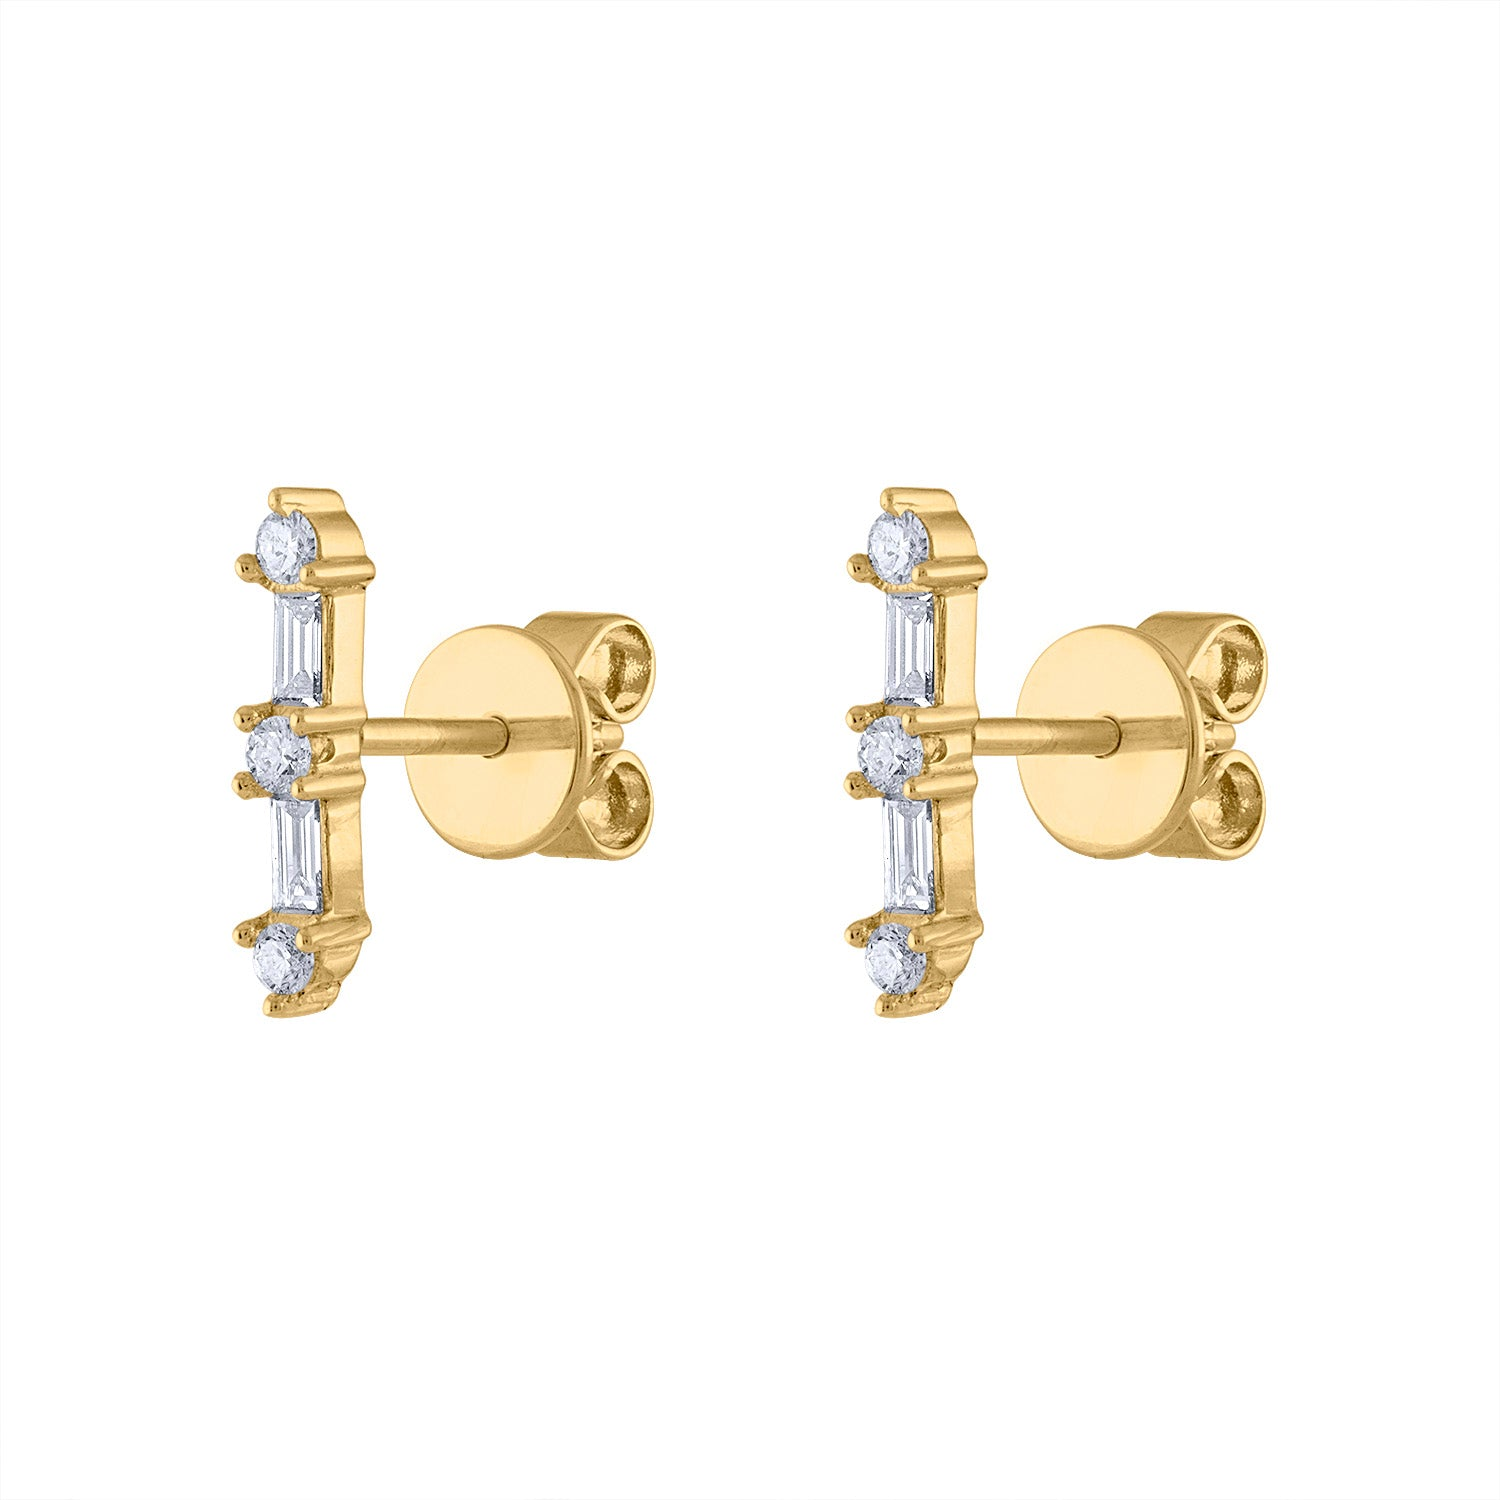 14KT GOLD DIAMOND BAR EARRING